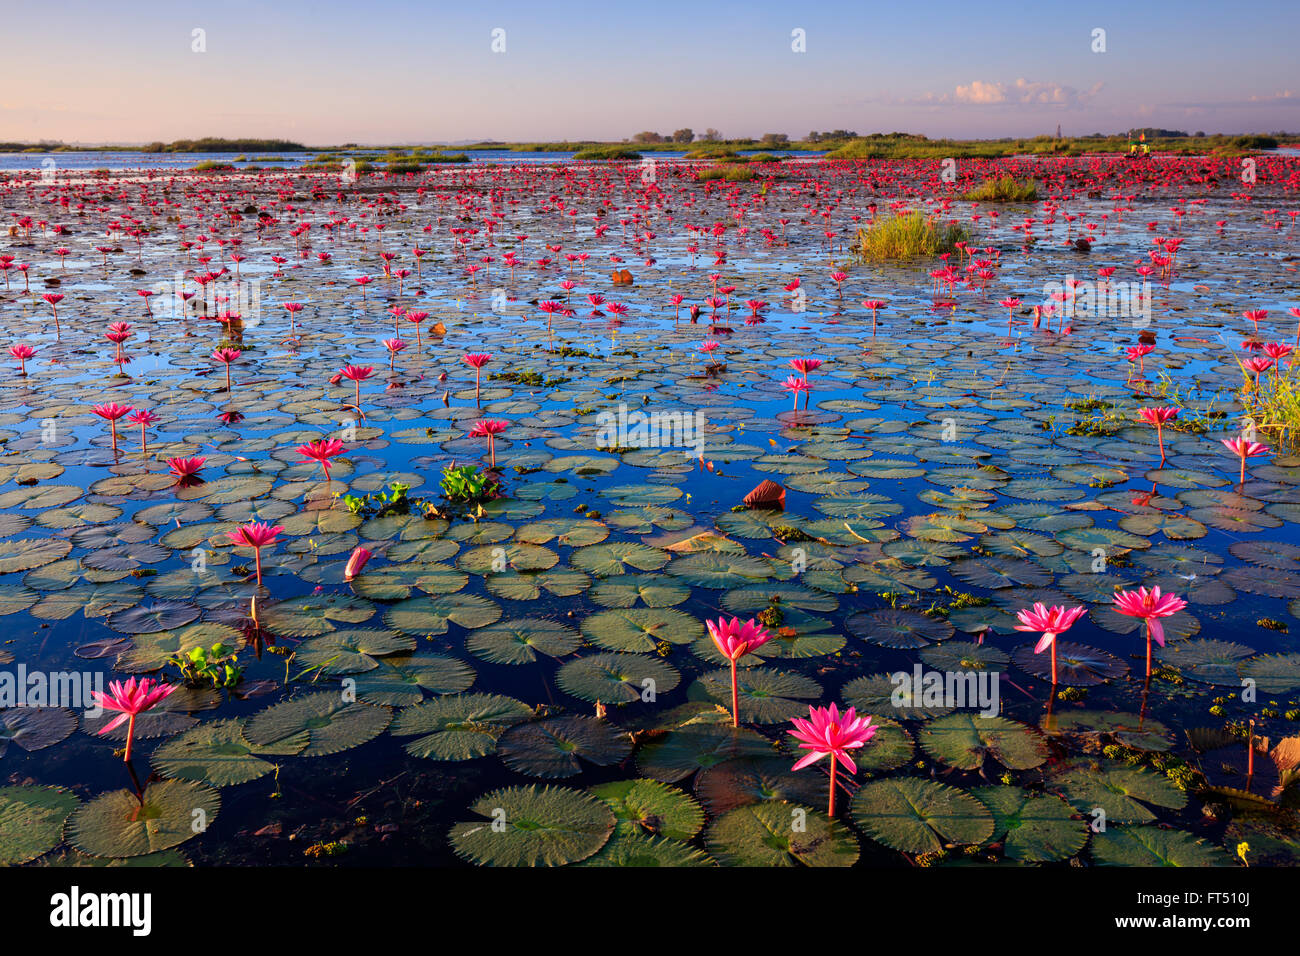 The Sea Of Red Lotus Lake Nong Harn Udon Thani Province